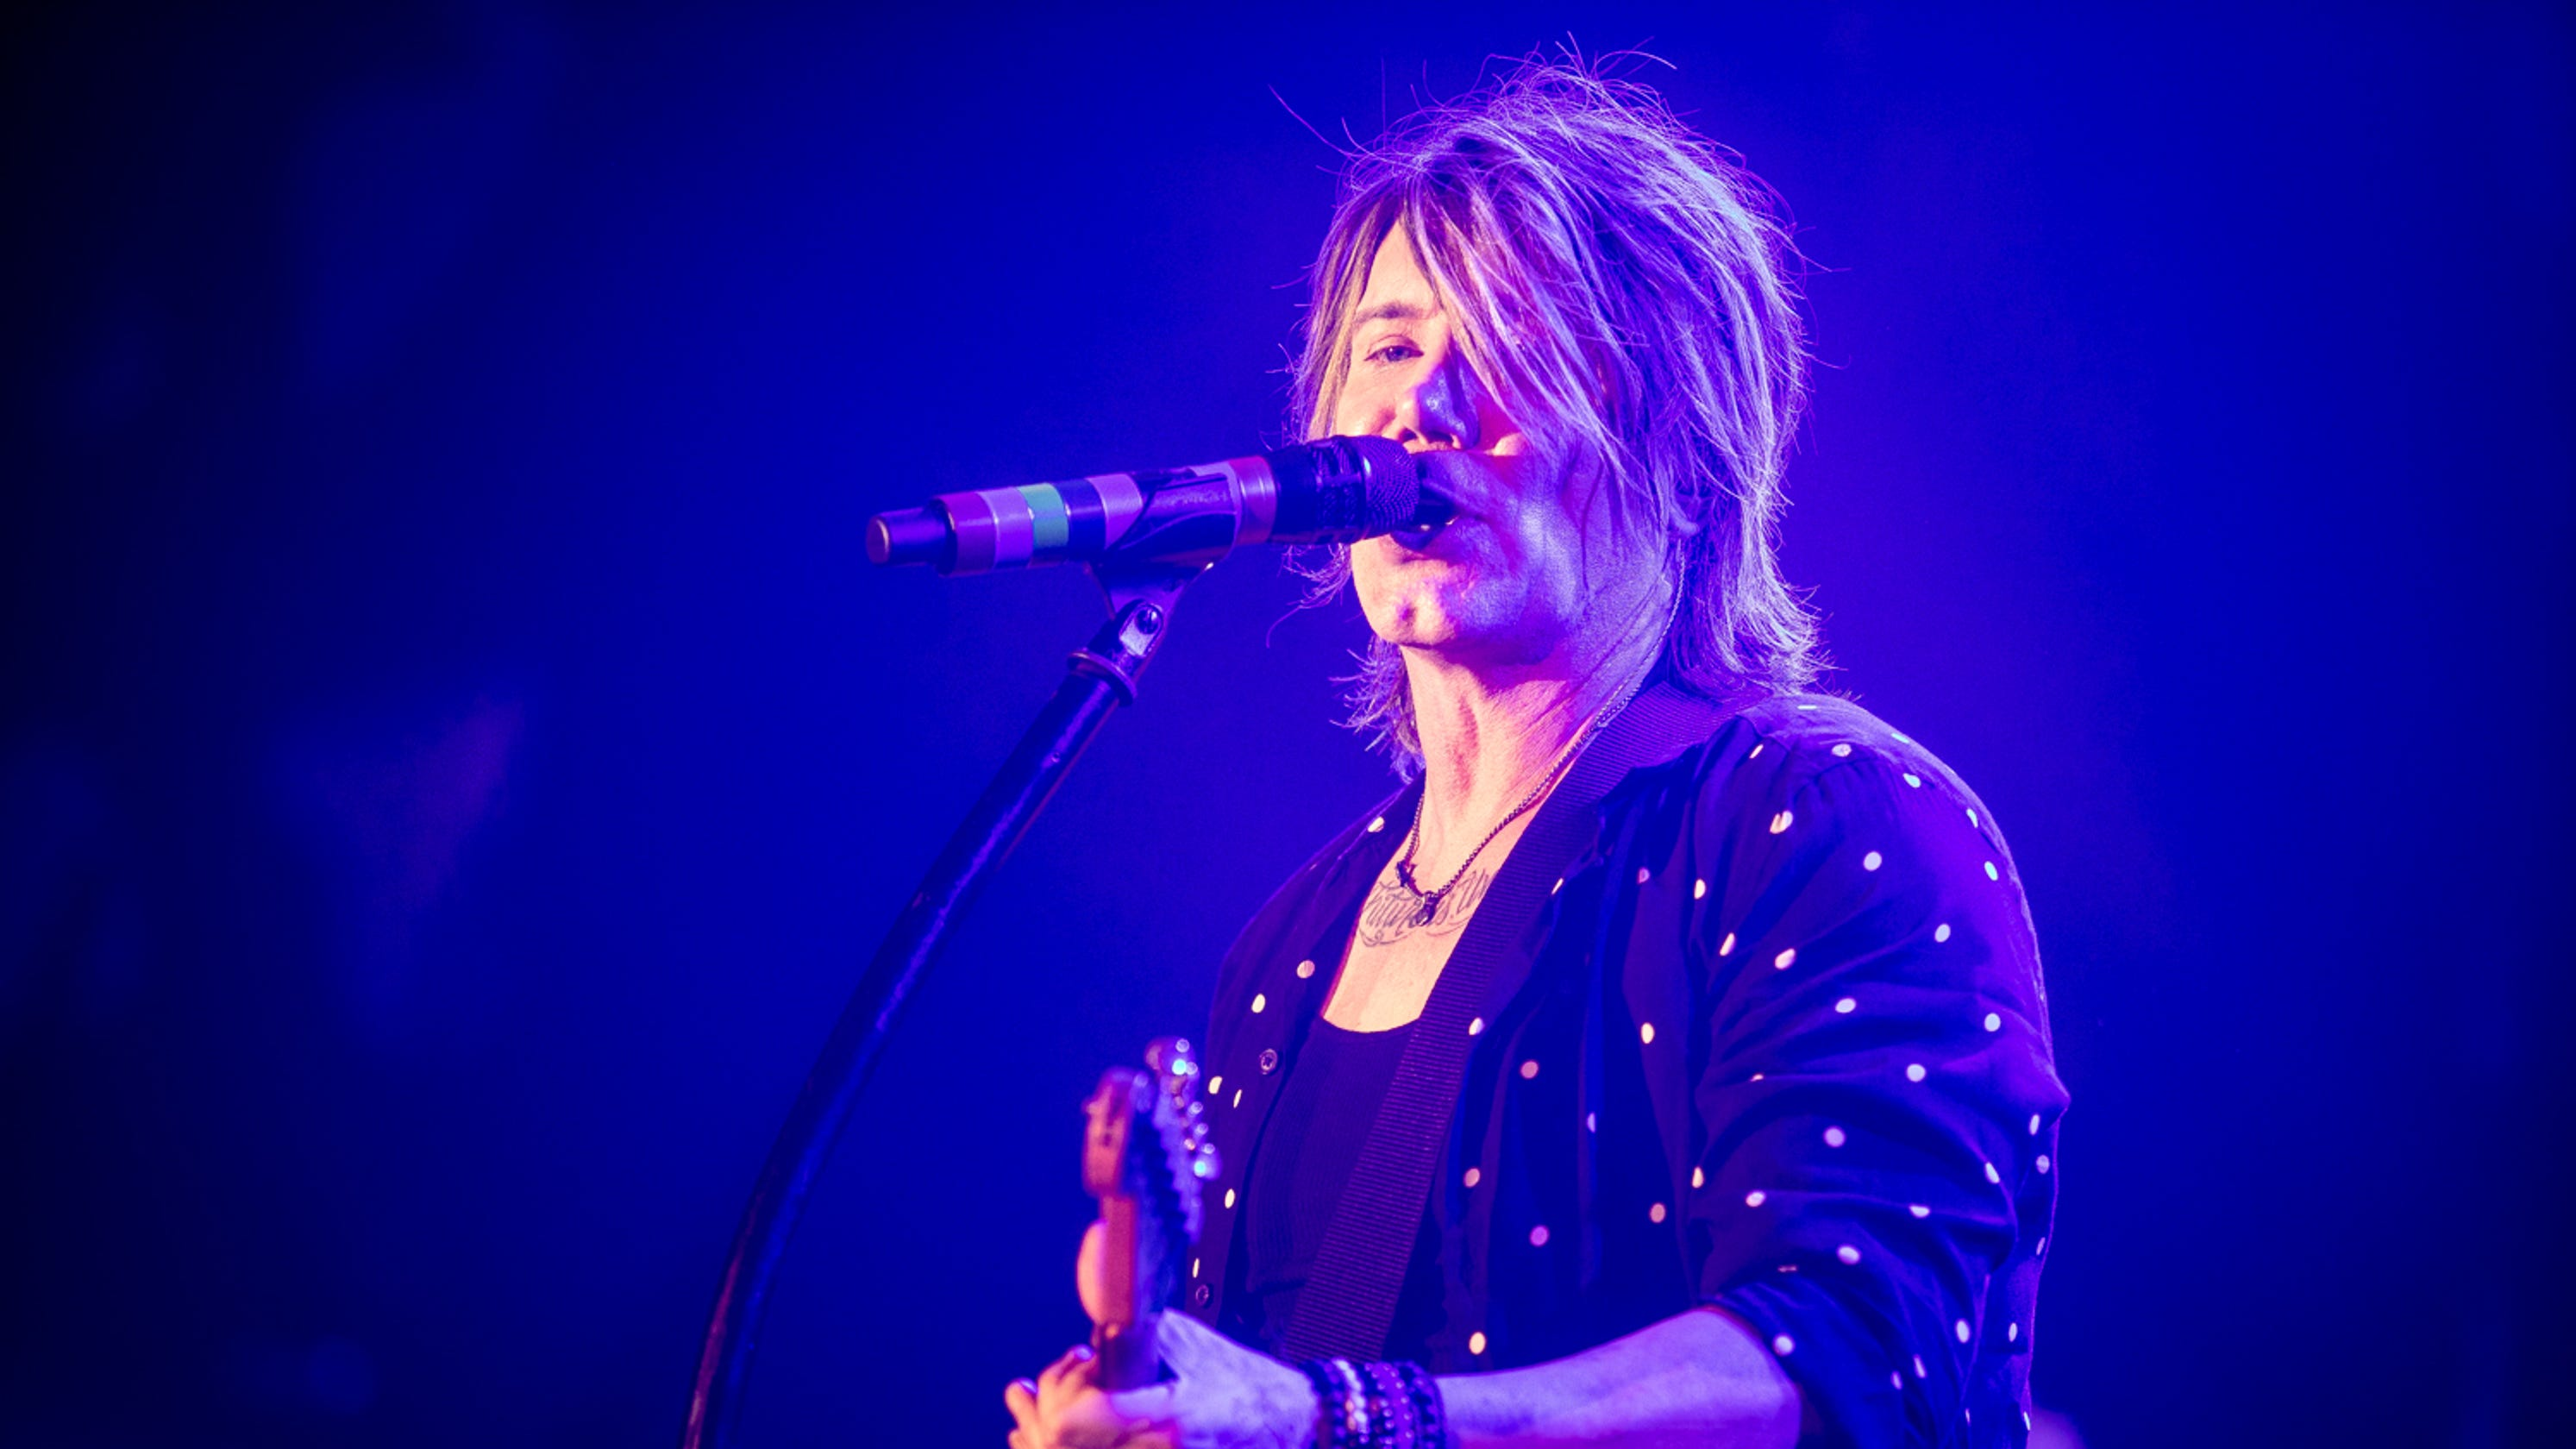 Goo Goo Dolls launch 'Dizzy Up the Girl' tour with sold-out